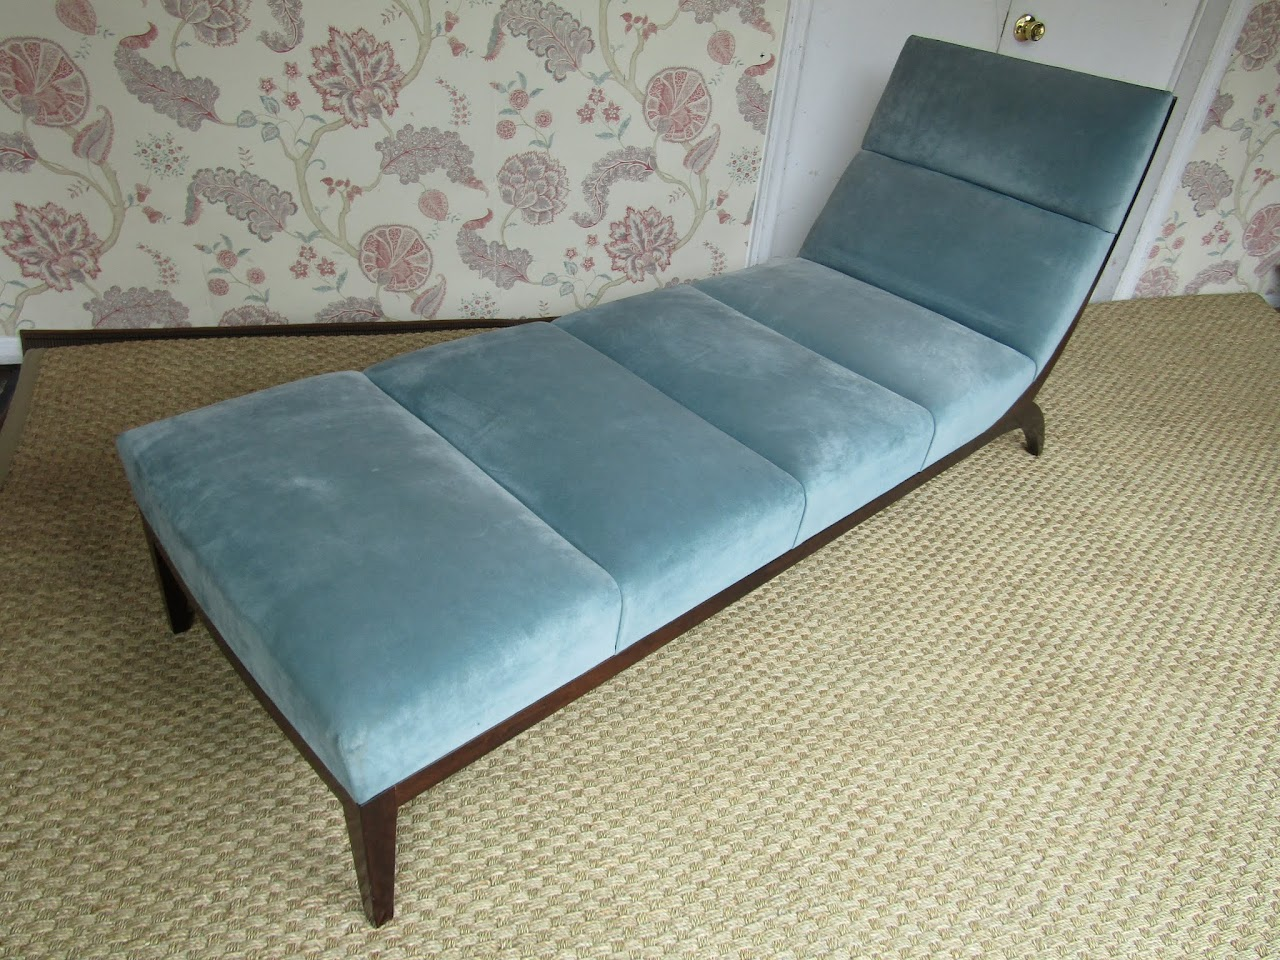 Suede Modern Chaise Lounge